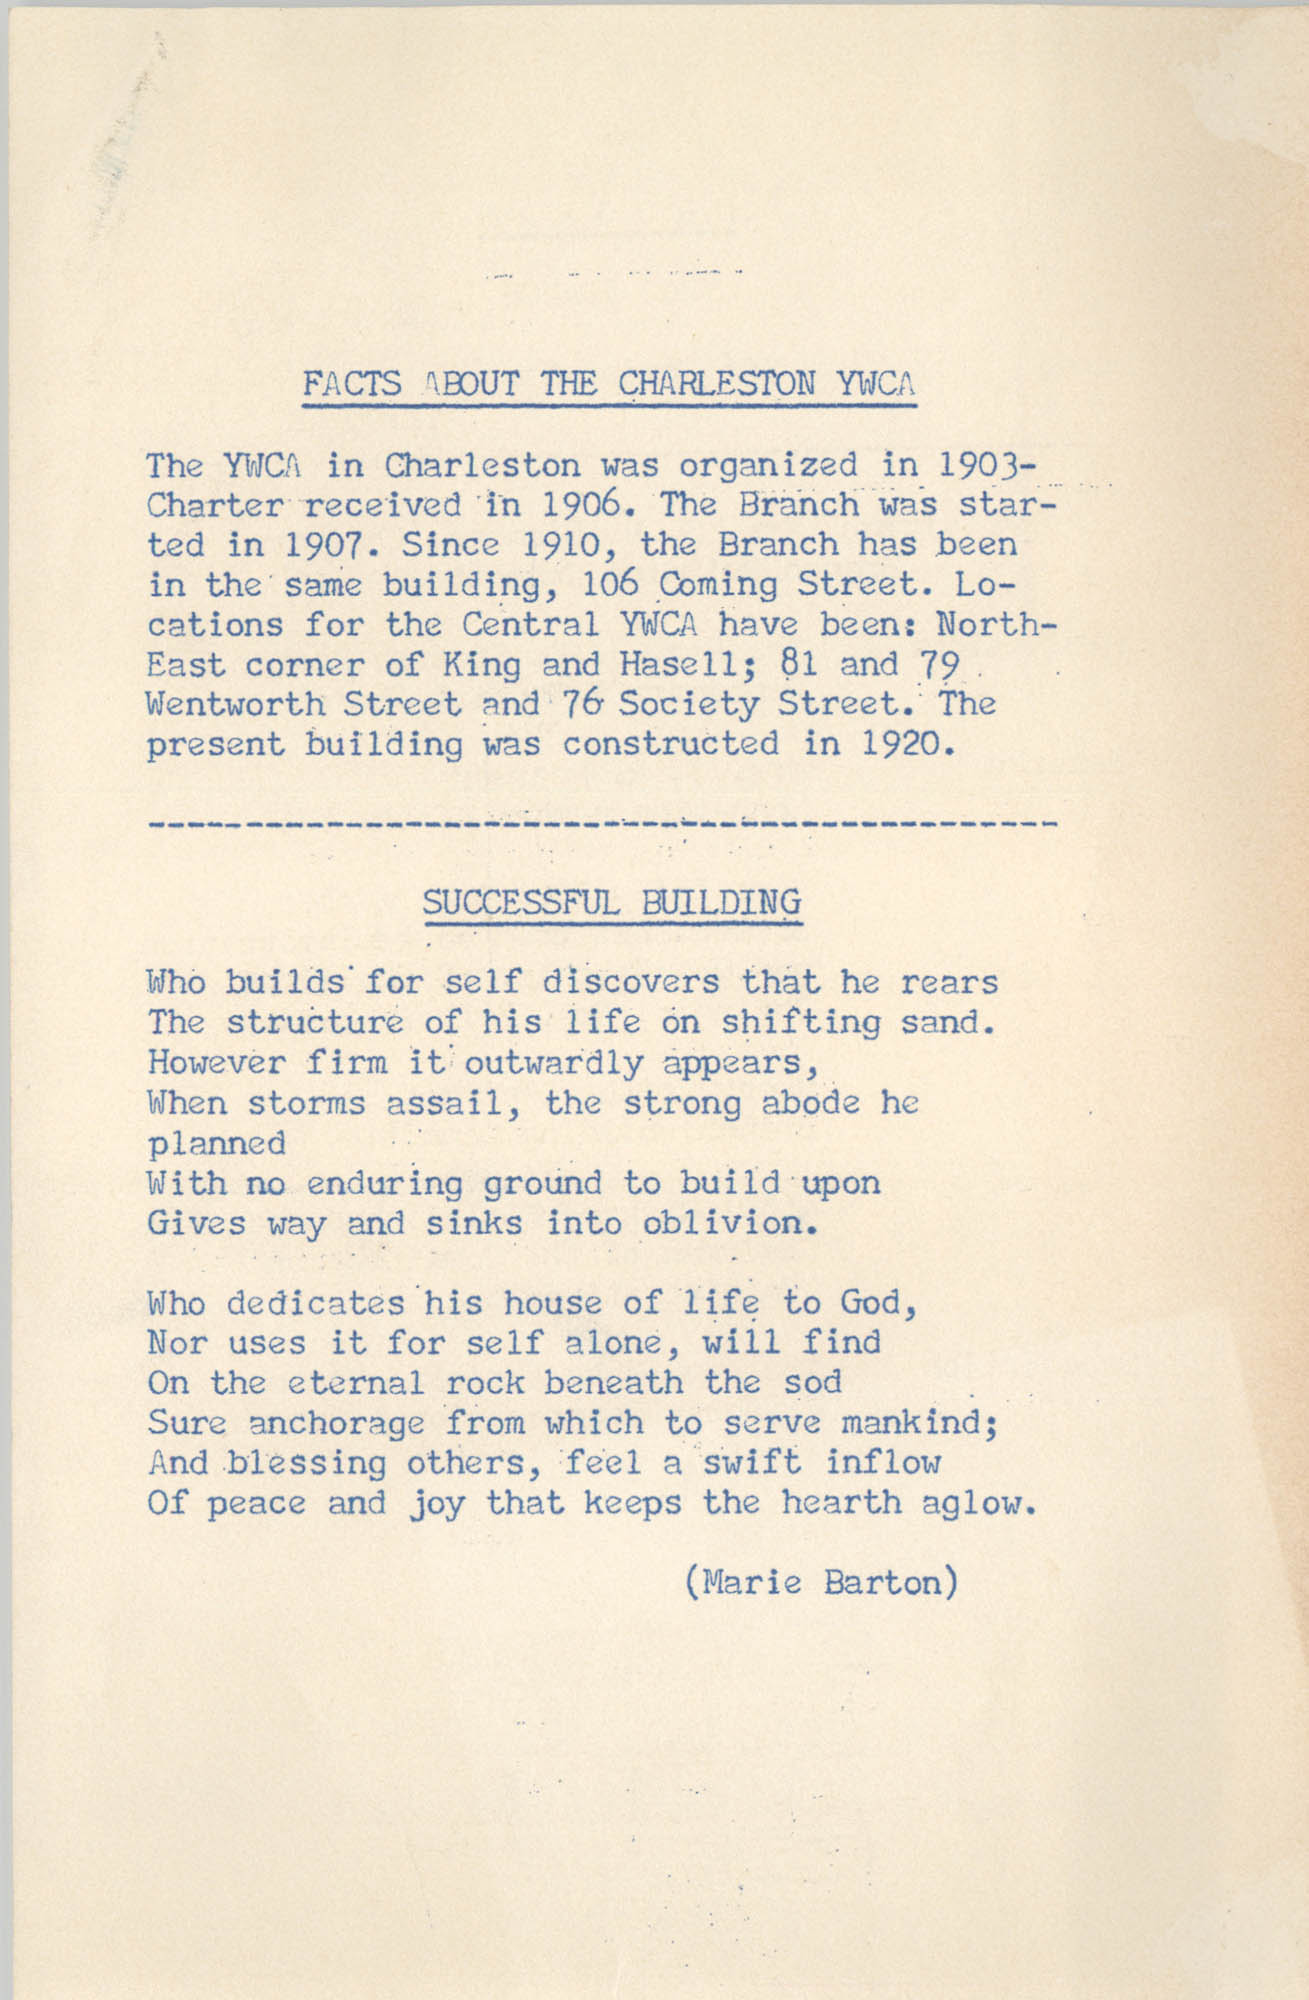 Coming Street Y.W.C.A. Scrapbook, 1953-1957, Page 141